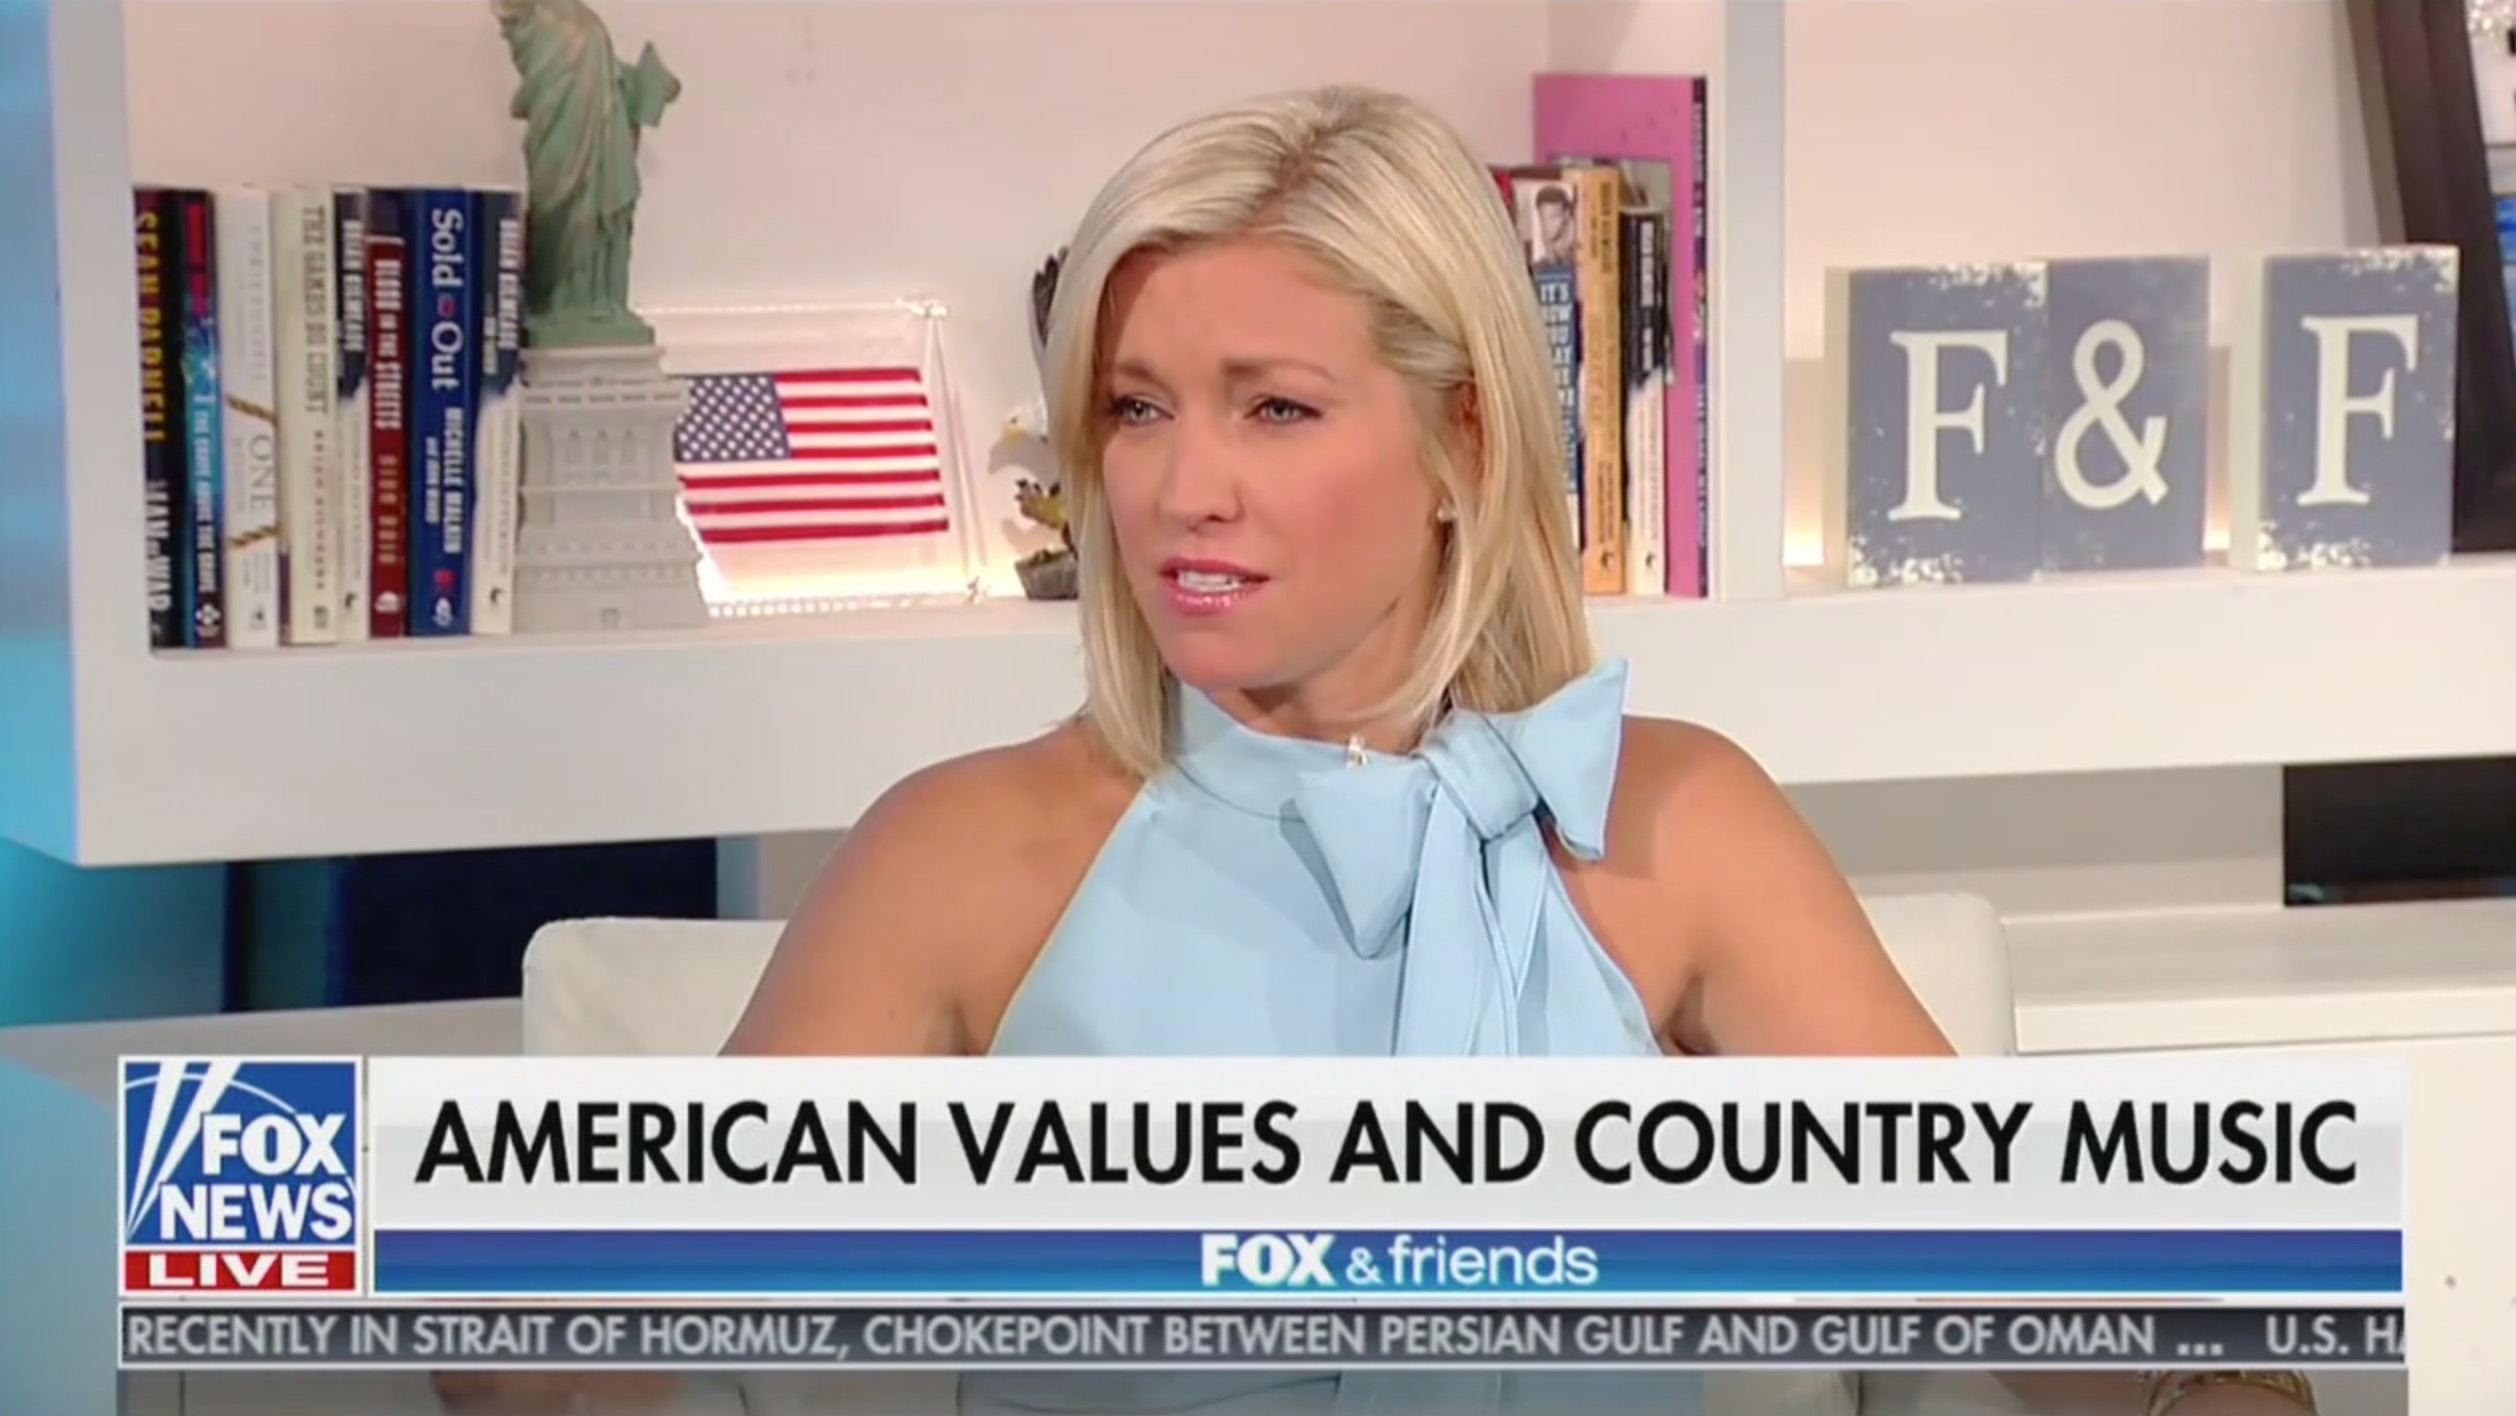 Fox News Host Outraged That Country Singer Used Curse Word in Call For Gun Control